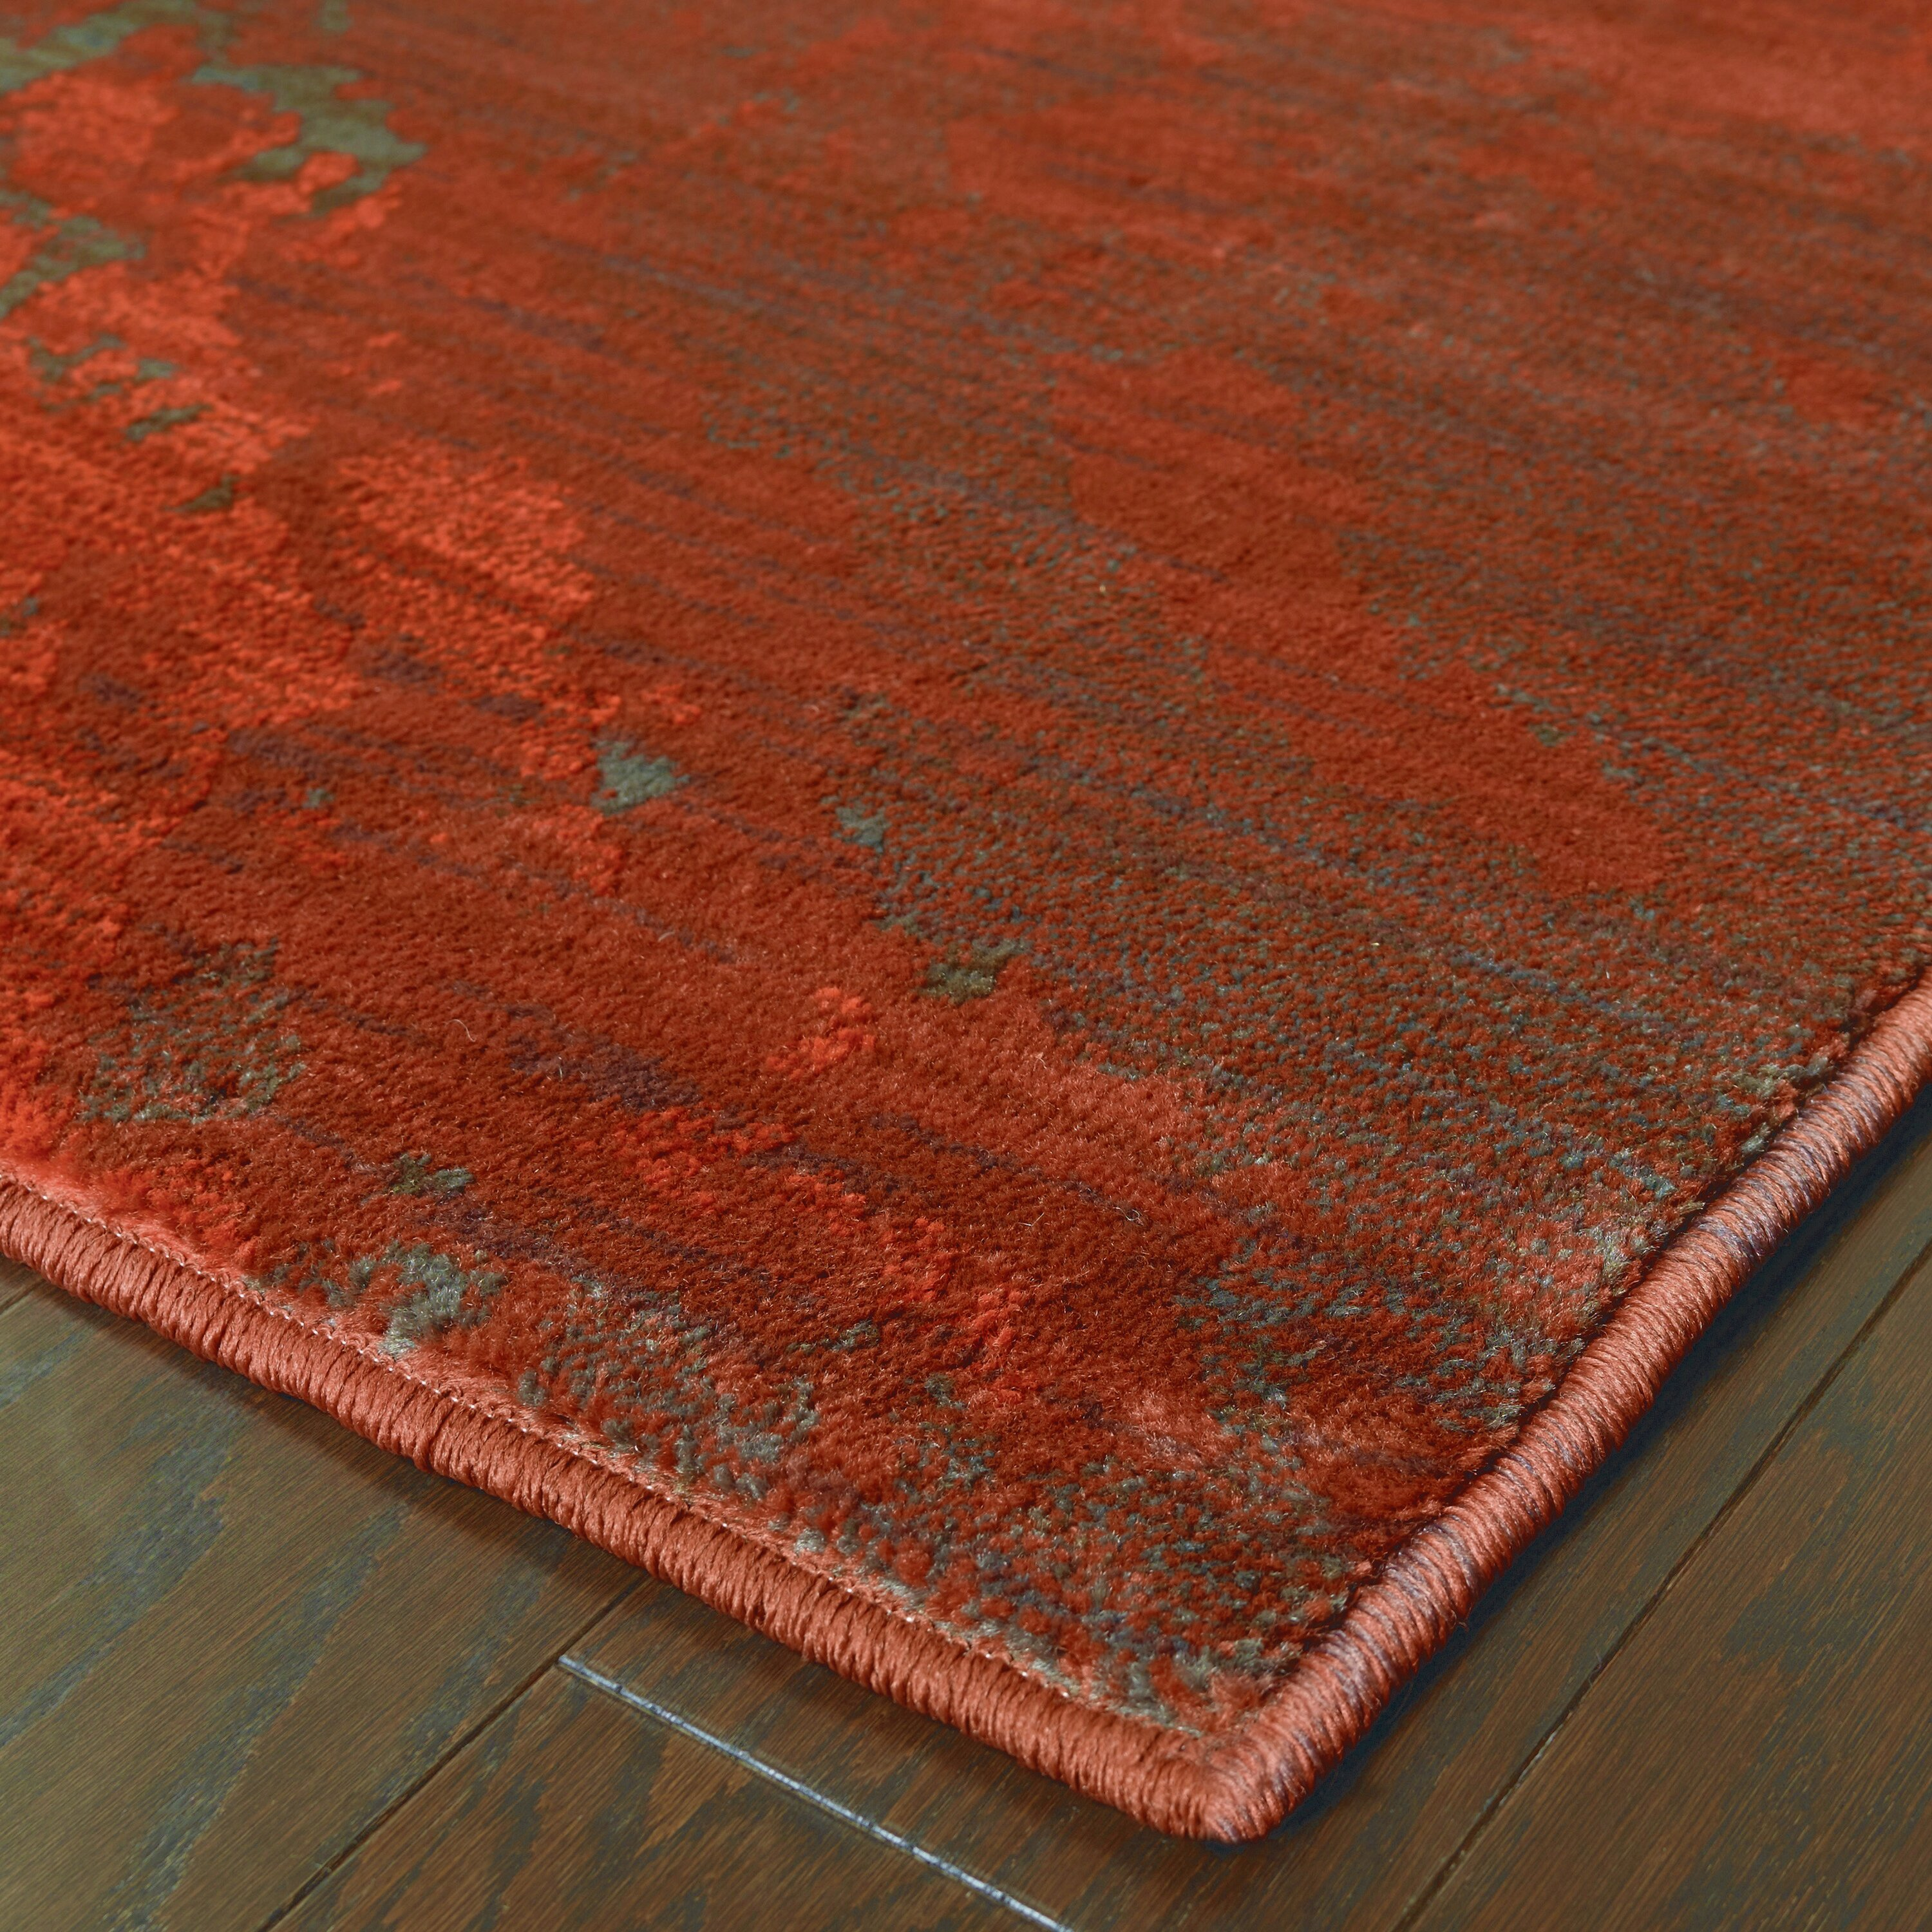 the conestoga trading co agave red grey area rug reviews wayfair. Black Bedroom Furniture Sets. Home Design Ideas